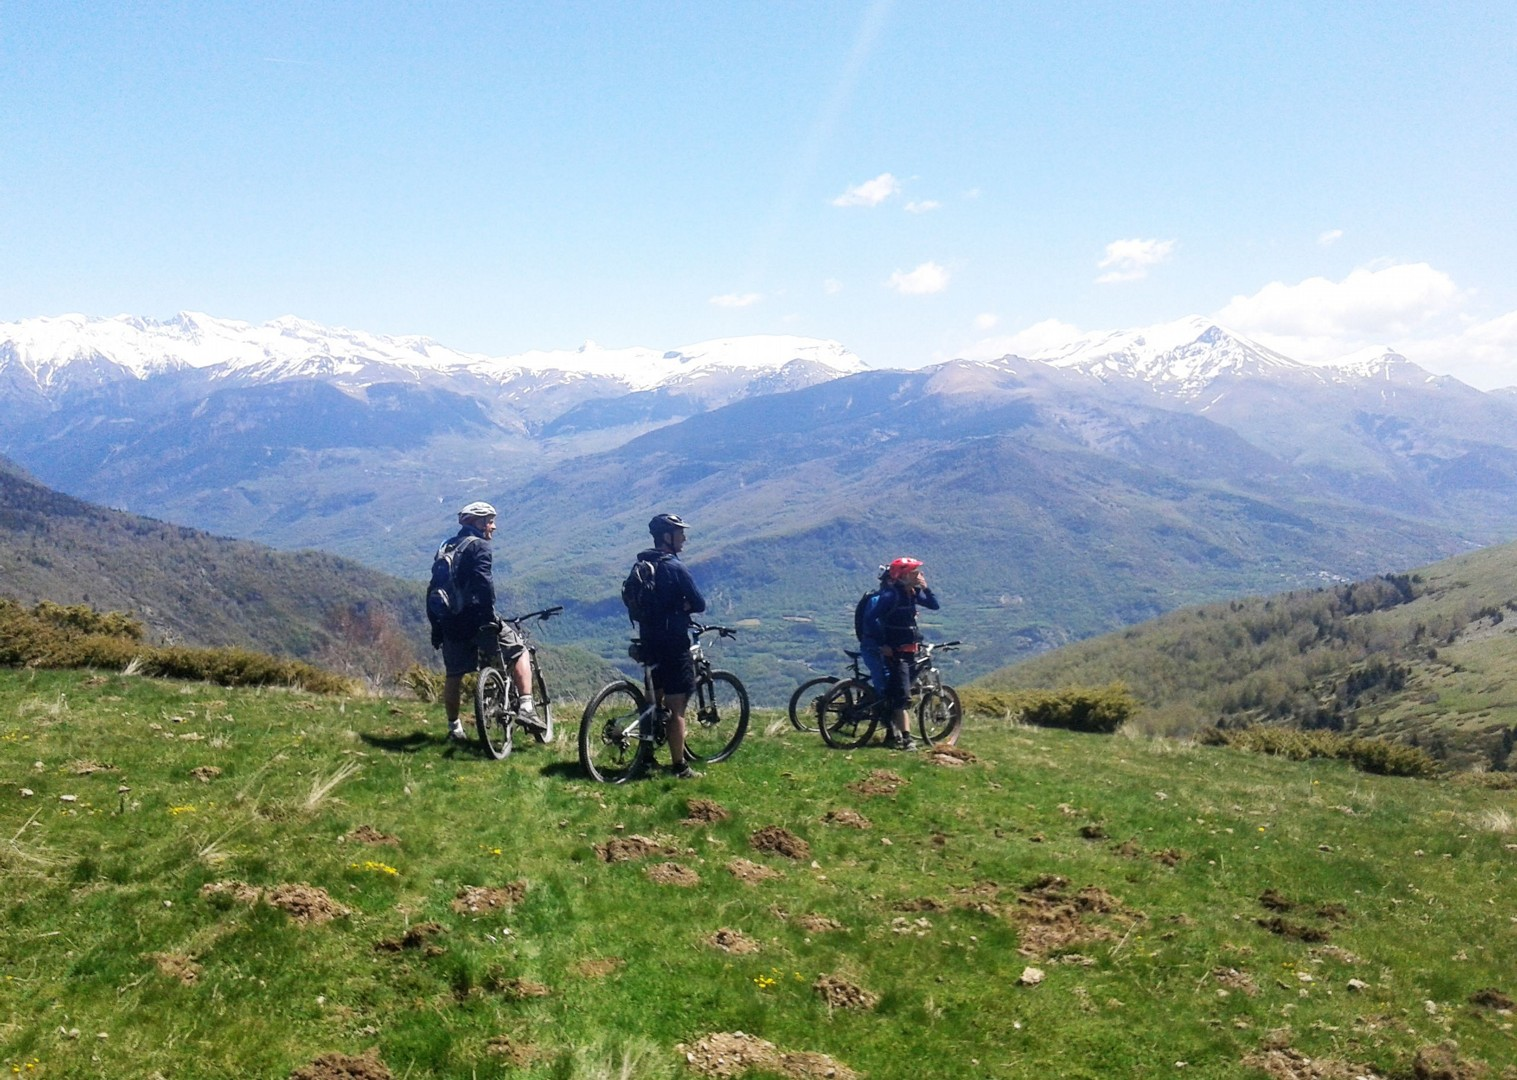 20160516_125157.jpg - Spain - Pyrenees Enduro - Guided Mountain Bike Holiday - Mountain Biking